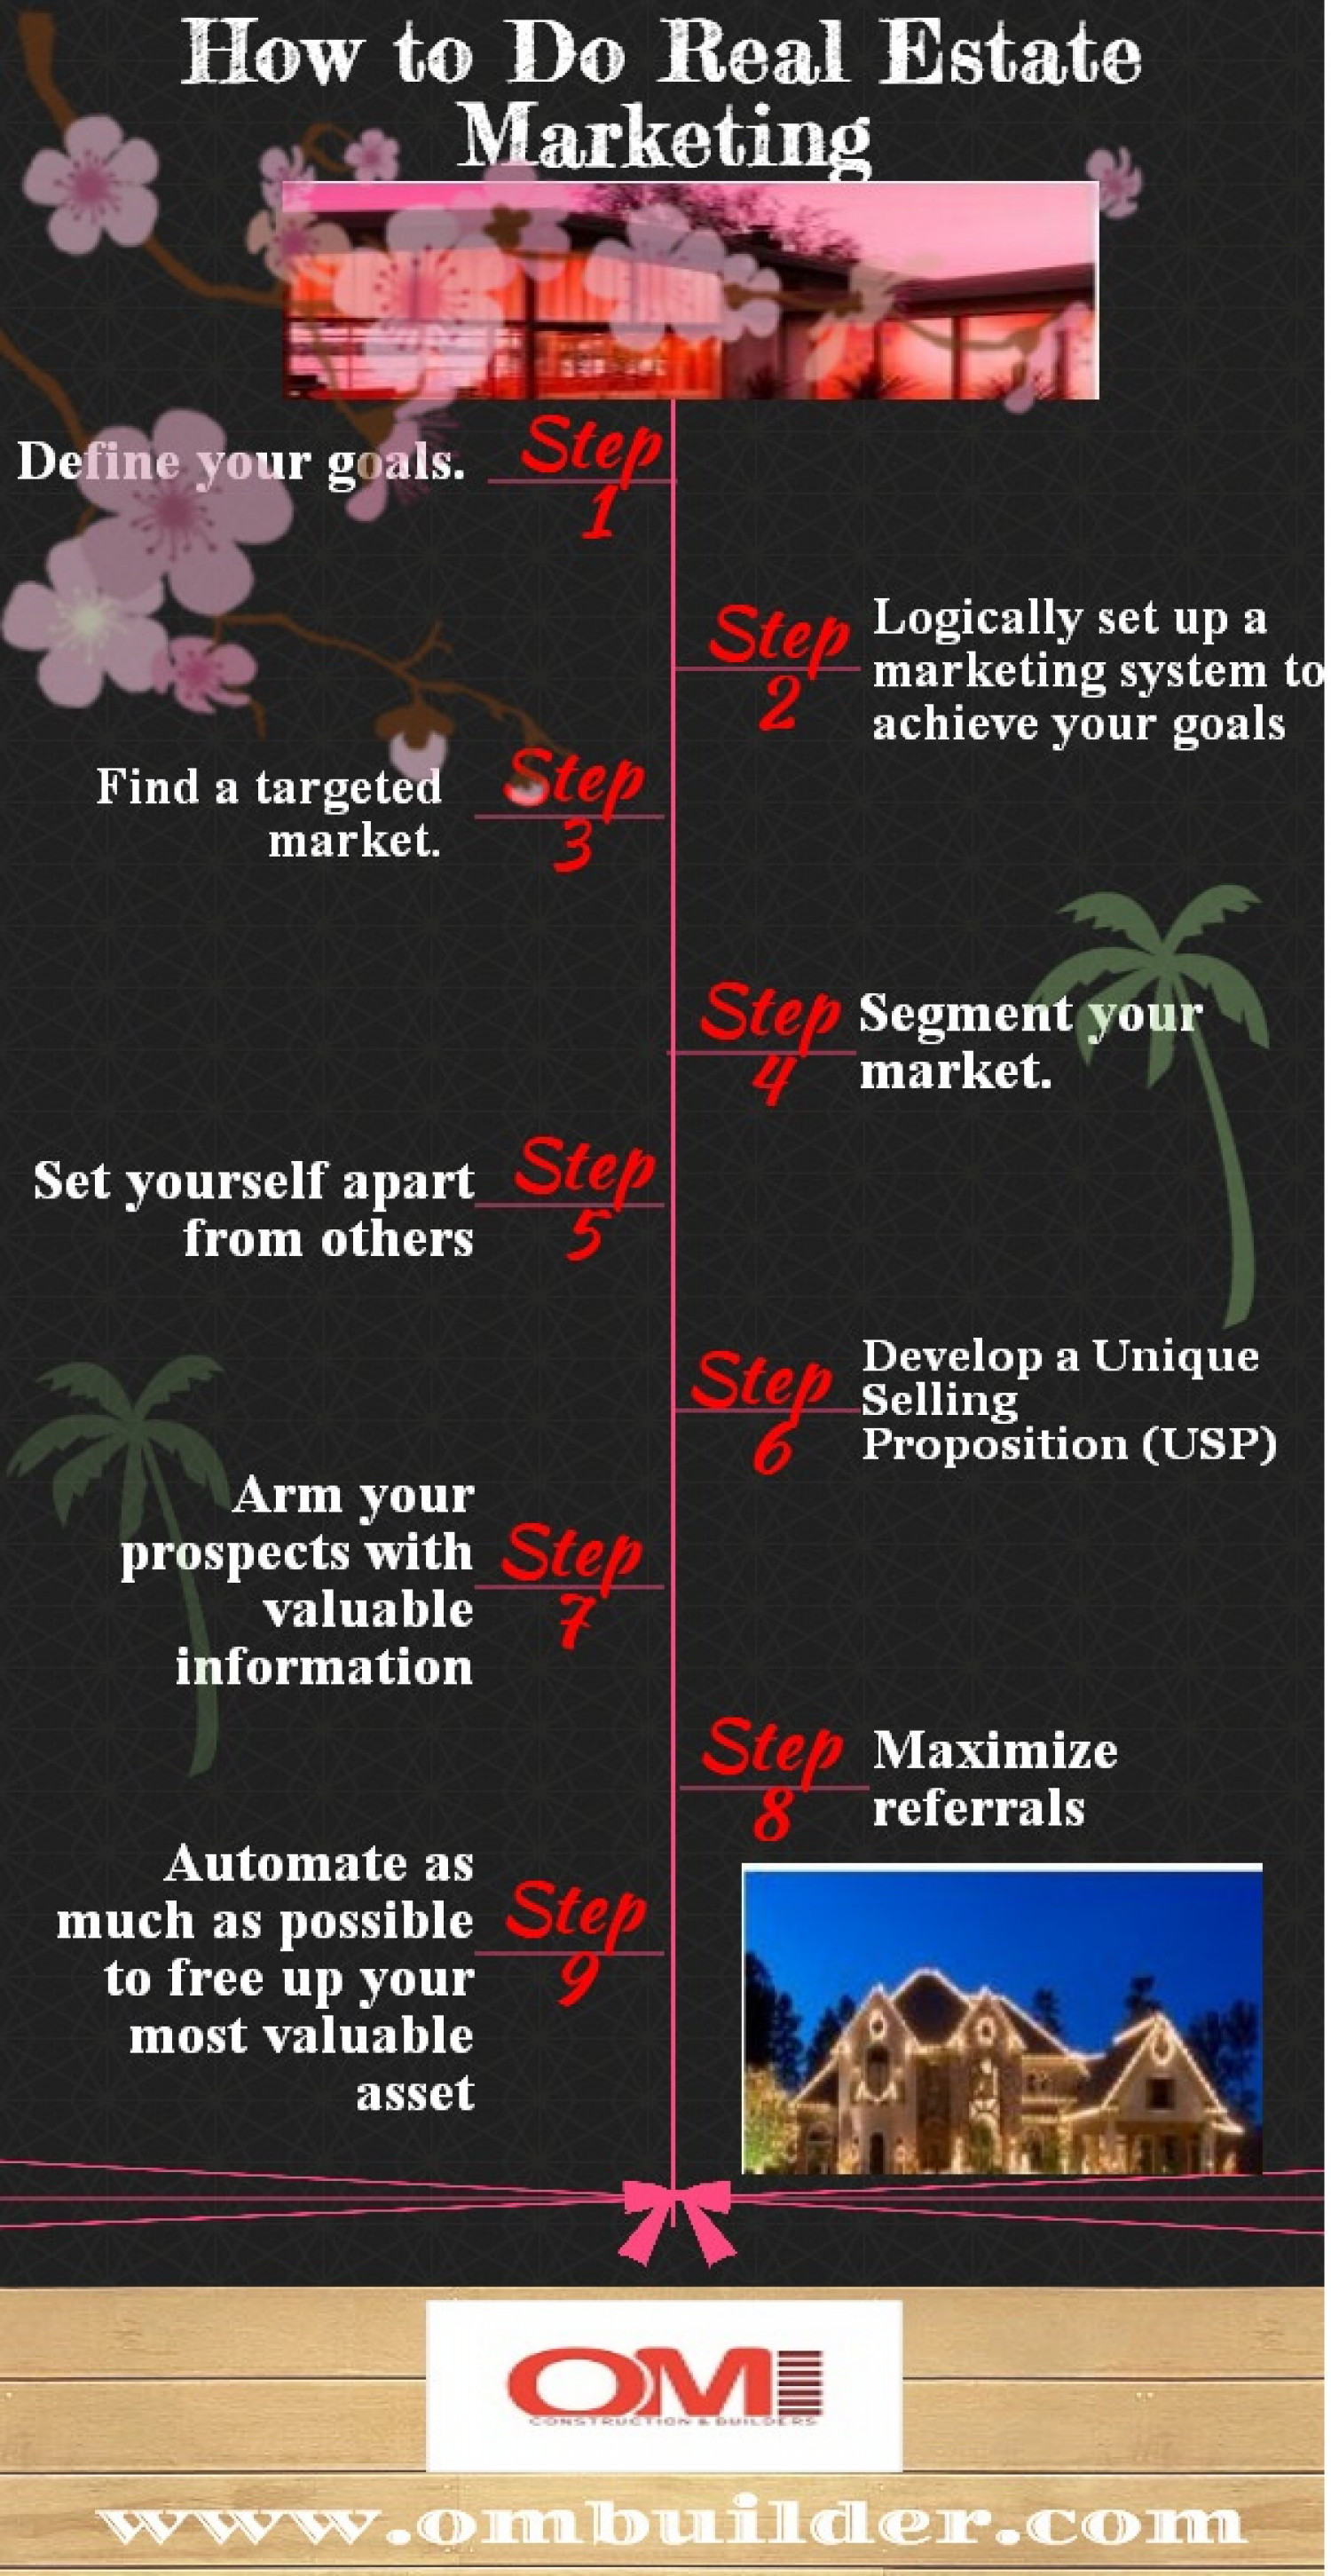 How to Do Real Estate Marketing Infographic